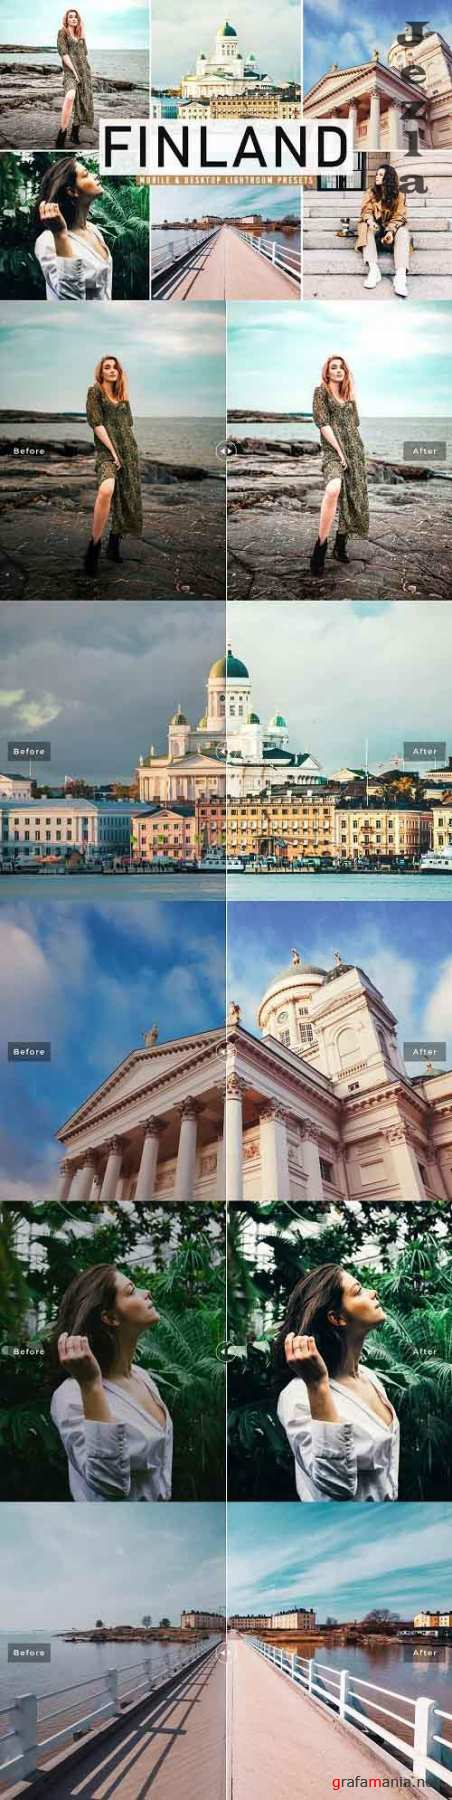 Finland Lightroom Presets Pack - 5039157 - Mobile & Desktop